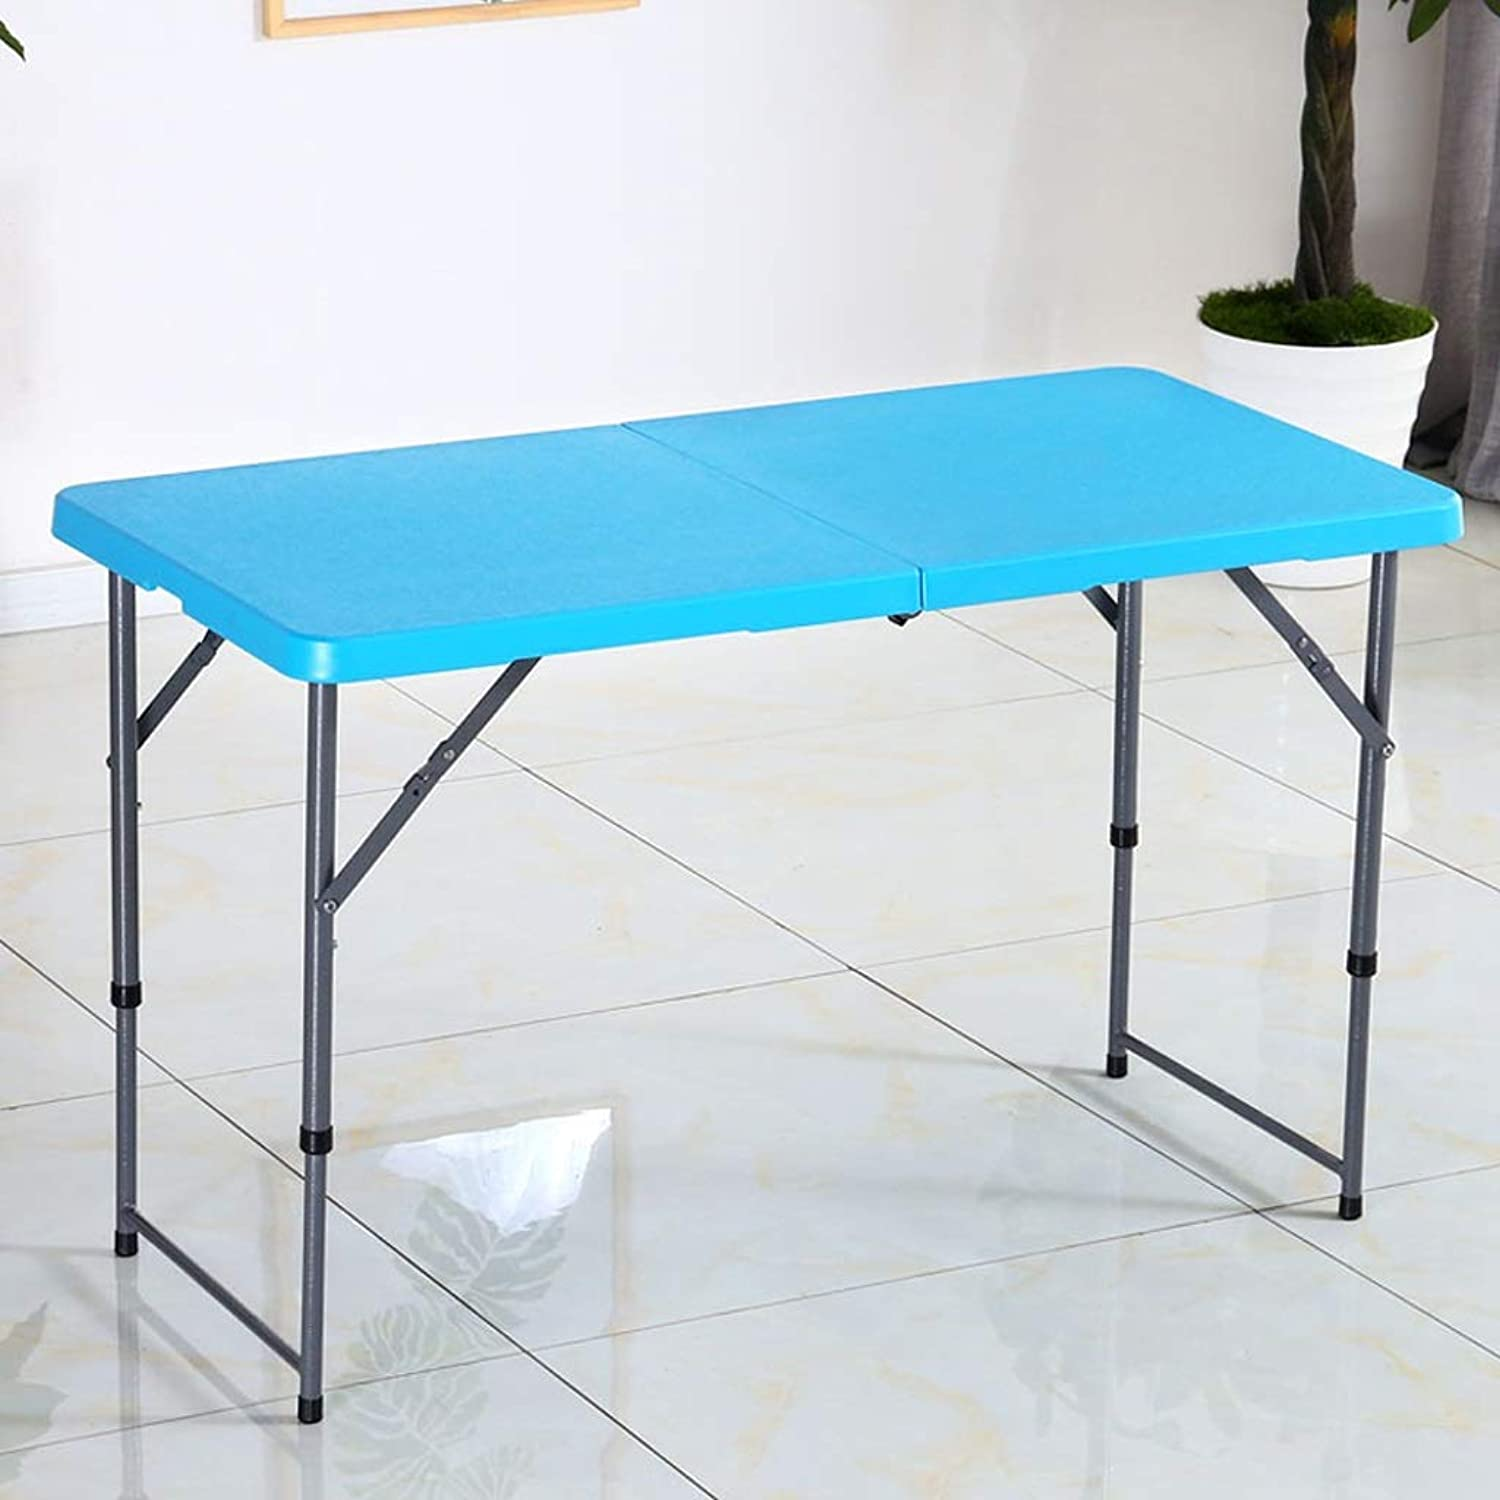 SHWSM Plastic Folding Table, Steel Tube Bracket Folding Table, Household Folding Table 120×60×75cm, Can Be Raised and Lowered, Two Heights Can Be Adjusted Folding Table (color   bluee)